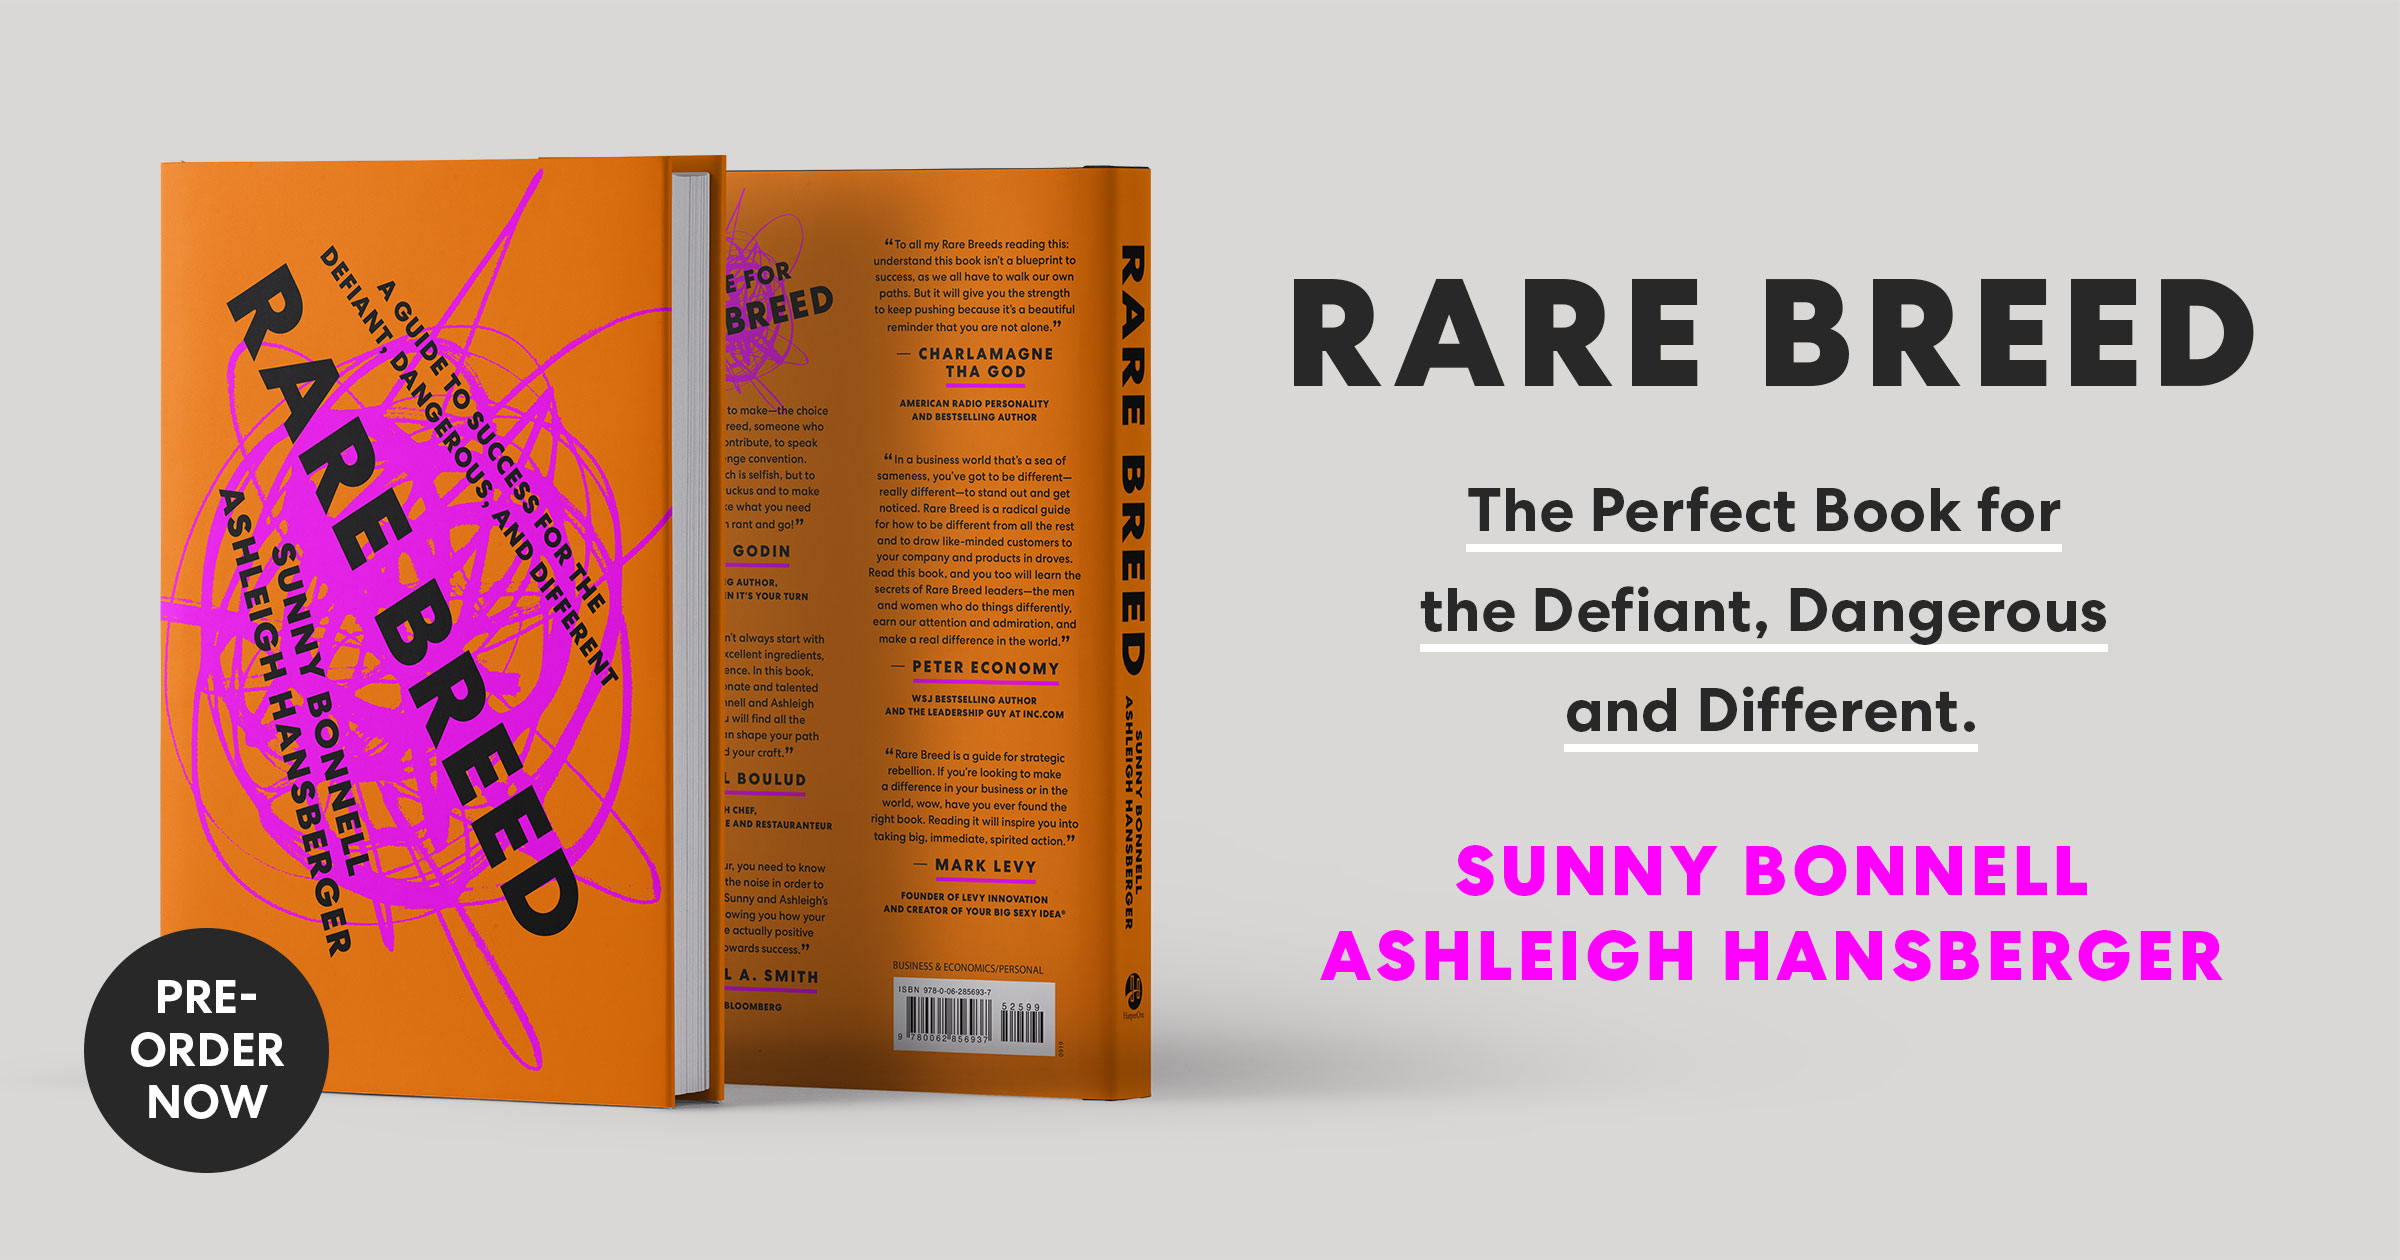 Rare Breed a guide to success for the defiant dangerous and different by Sunny Bonnell & Ashleigh Hansberger